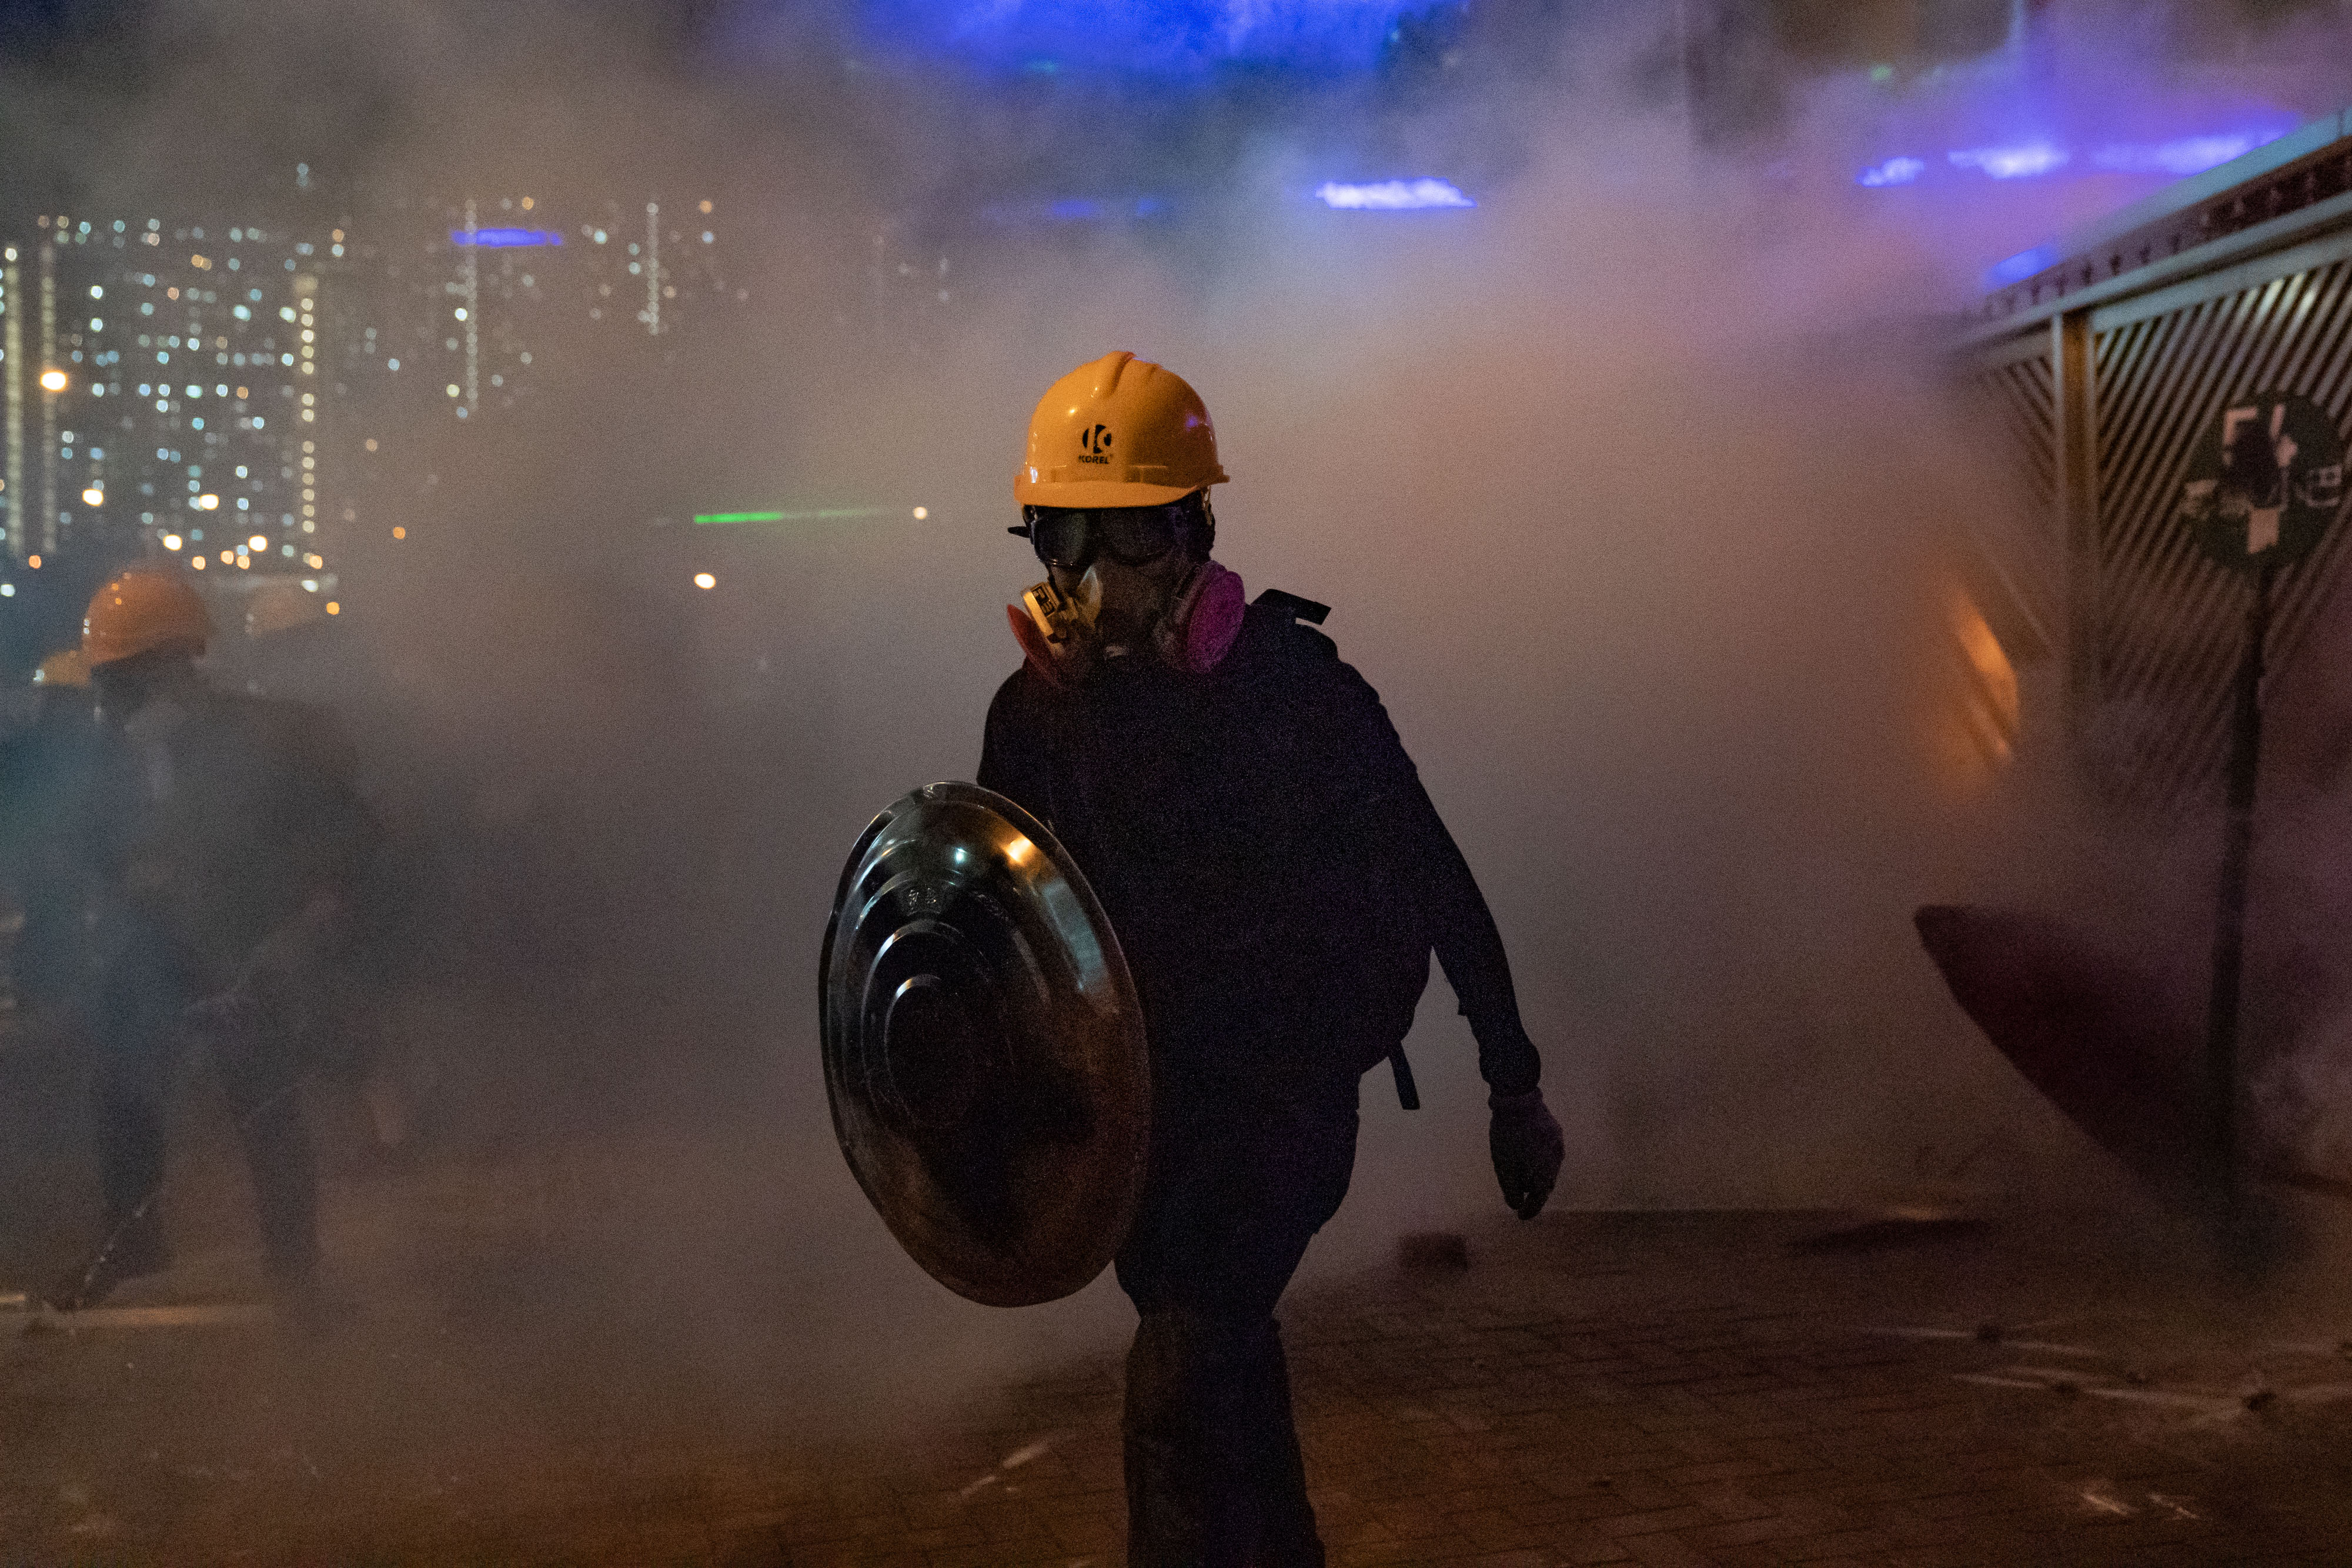 Protesters stand off with police in a pall of tear gas during a demonstration on August 5, 2019 in Hong Kong